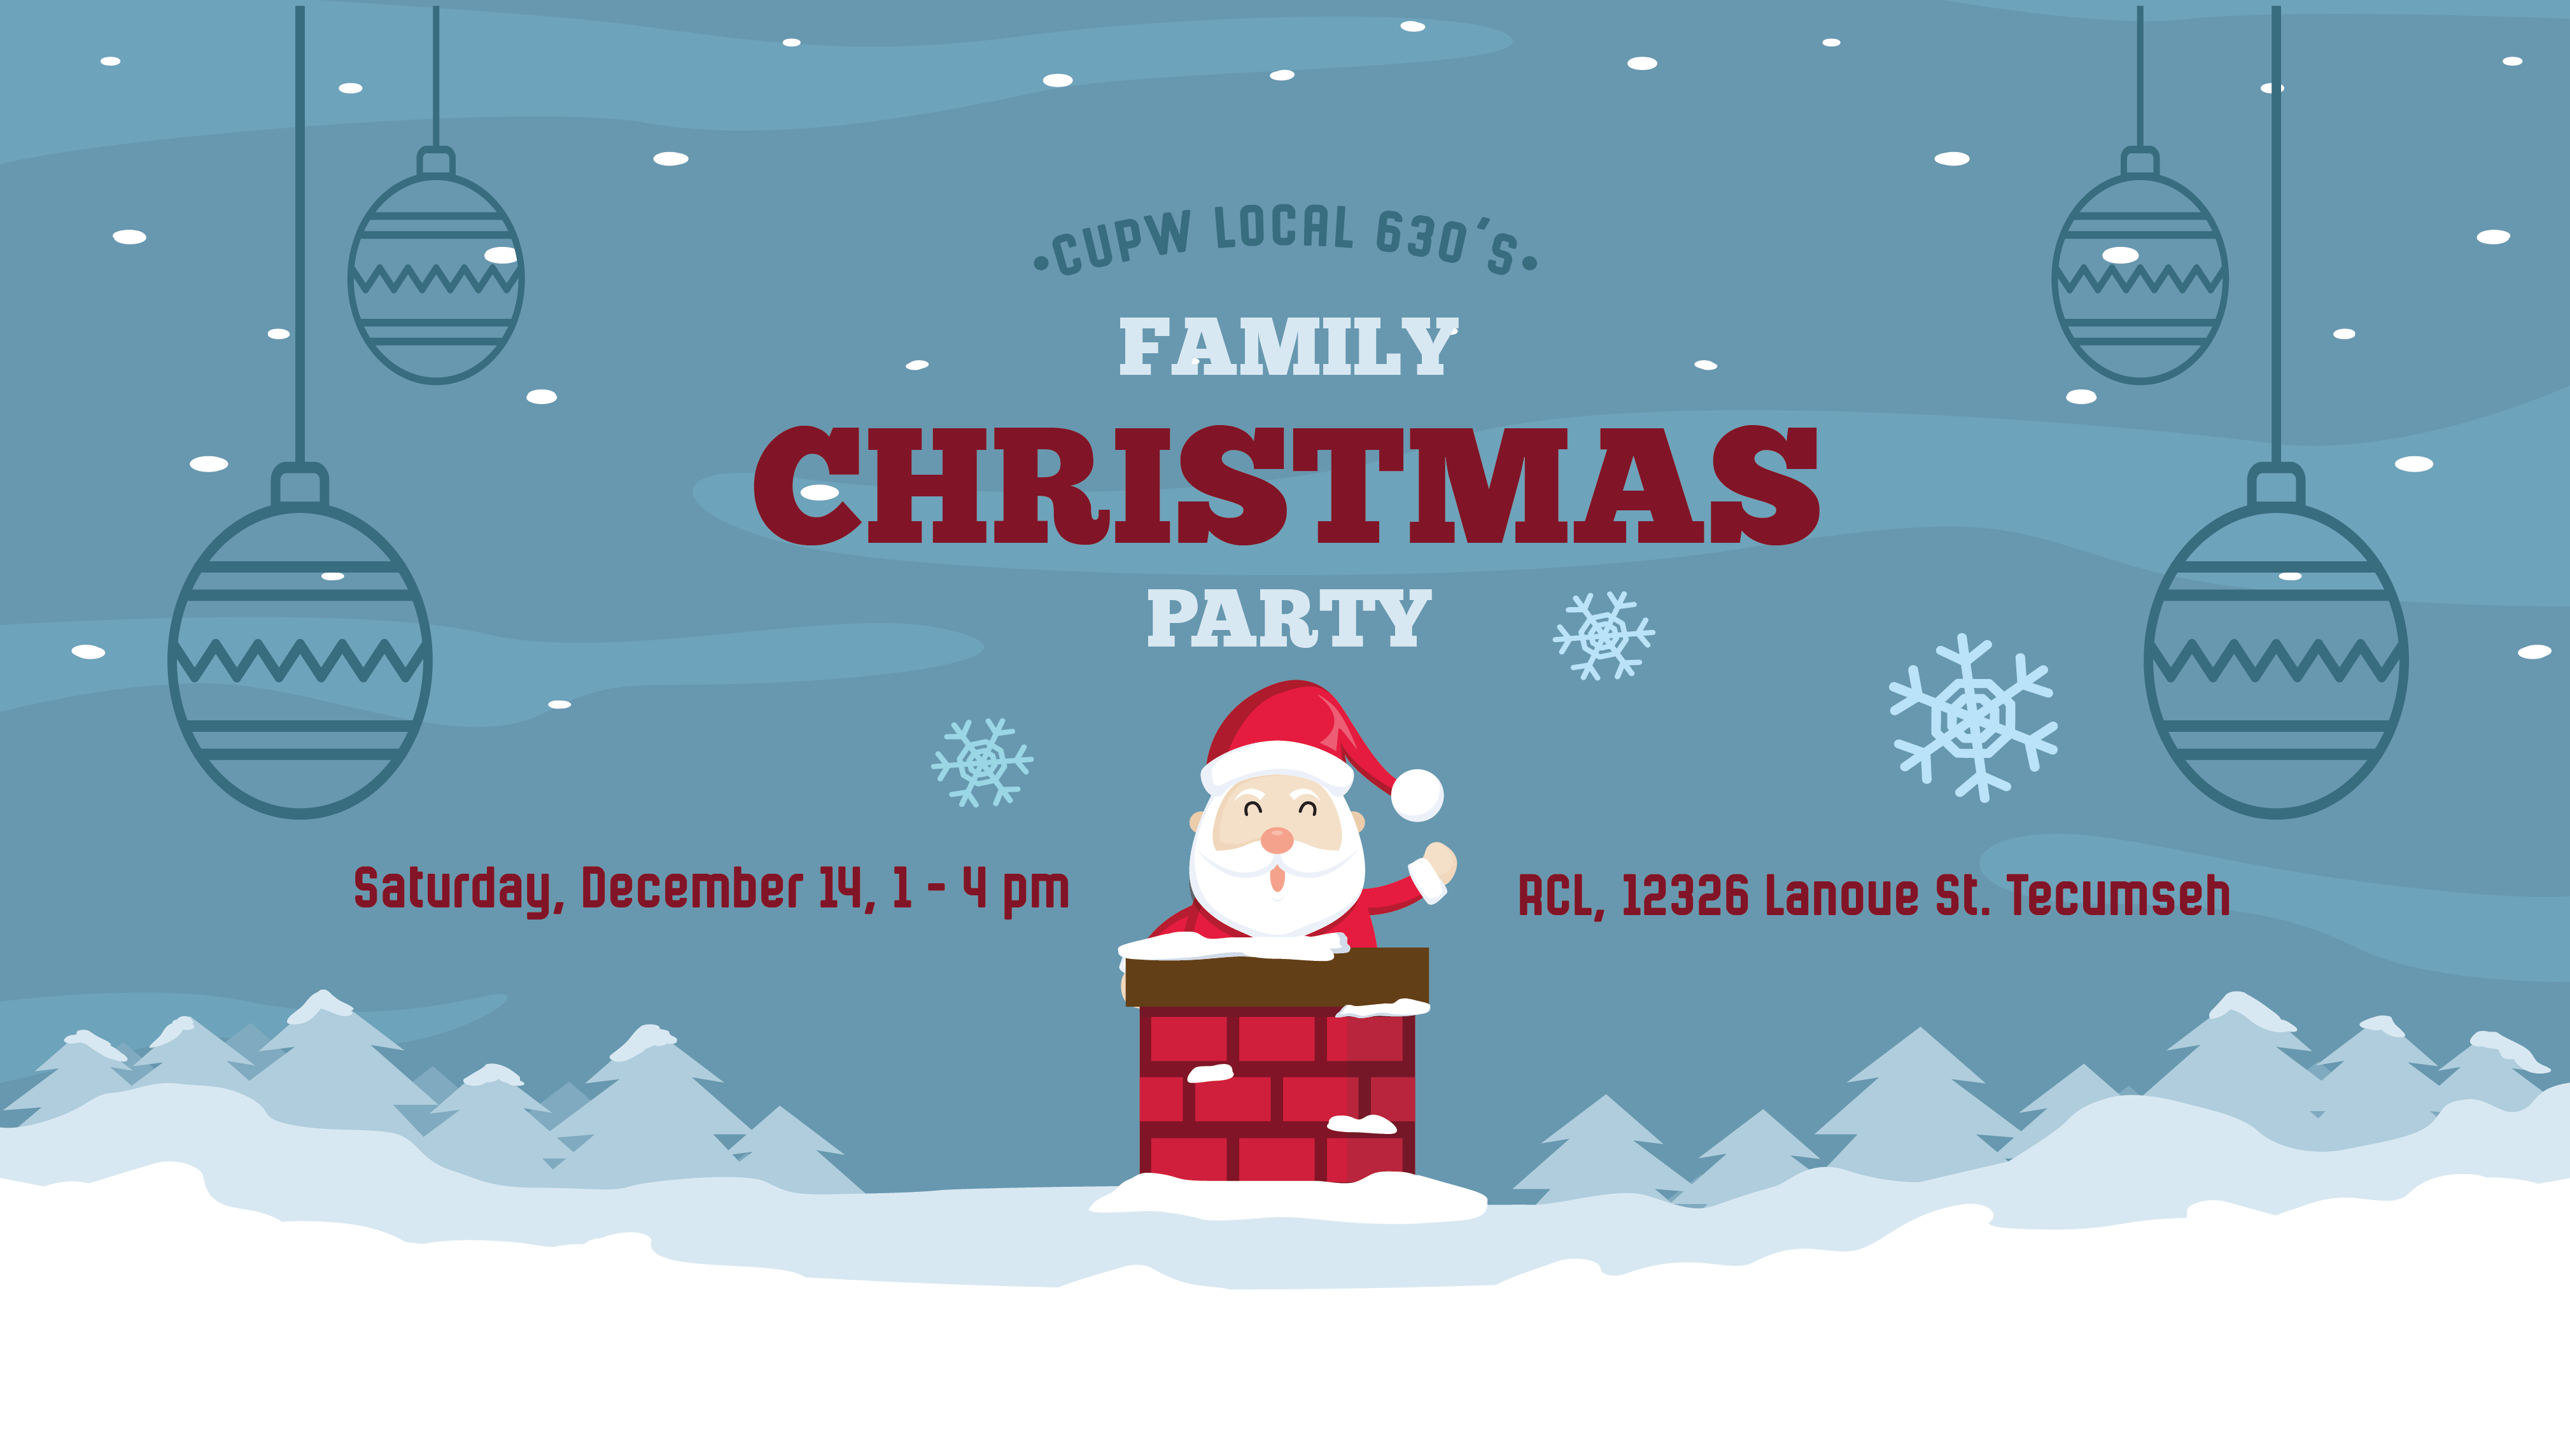 Local 630 Family Christmas Party